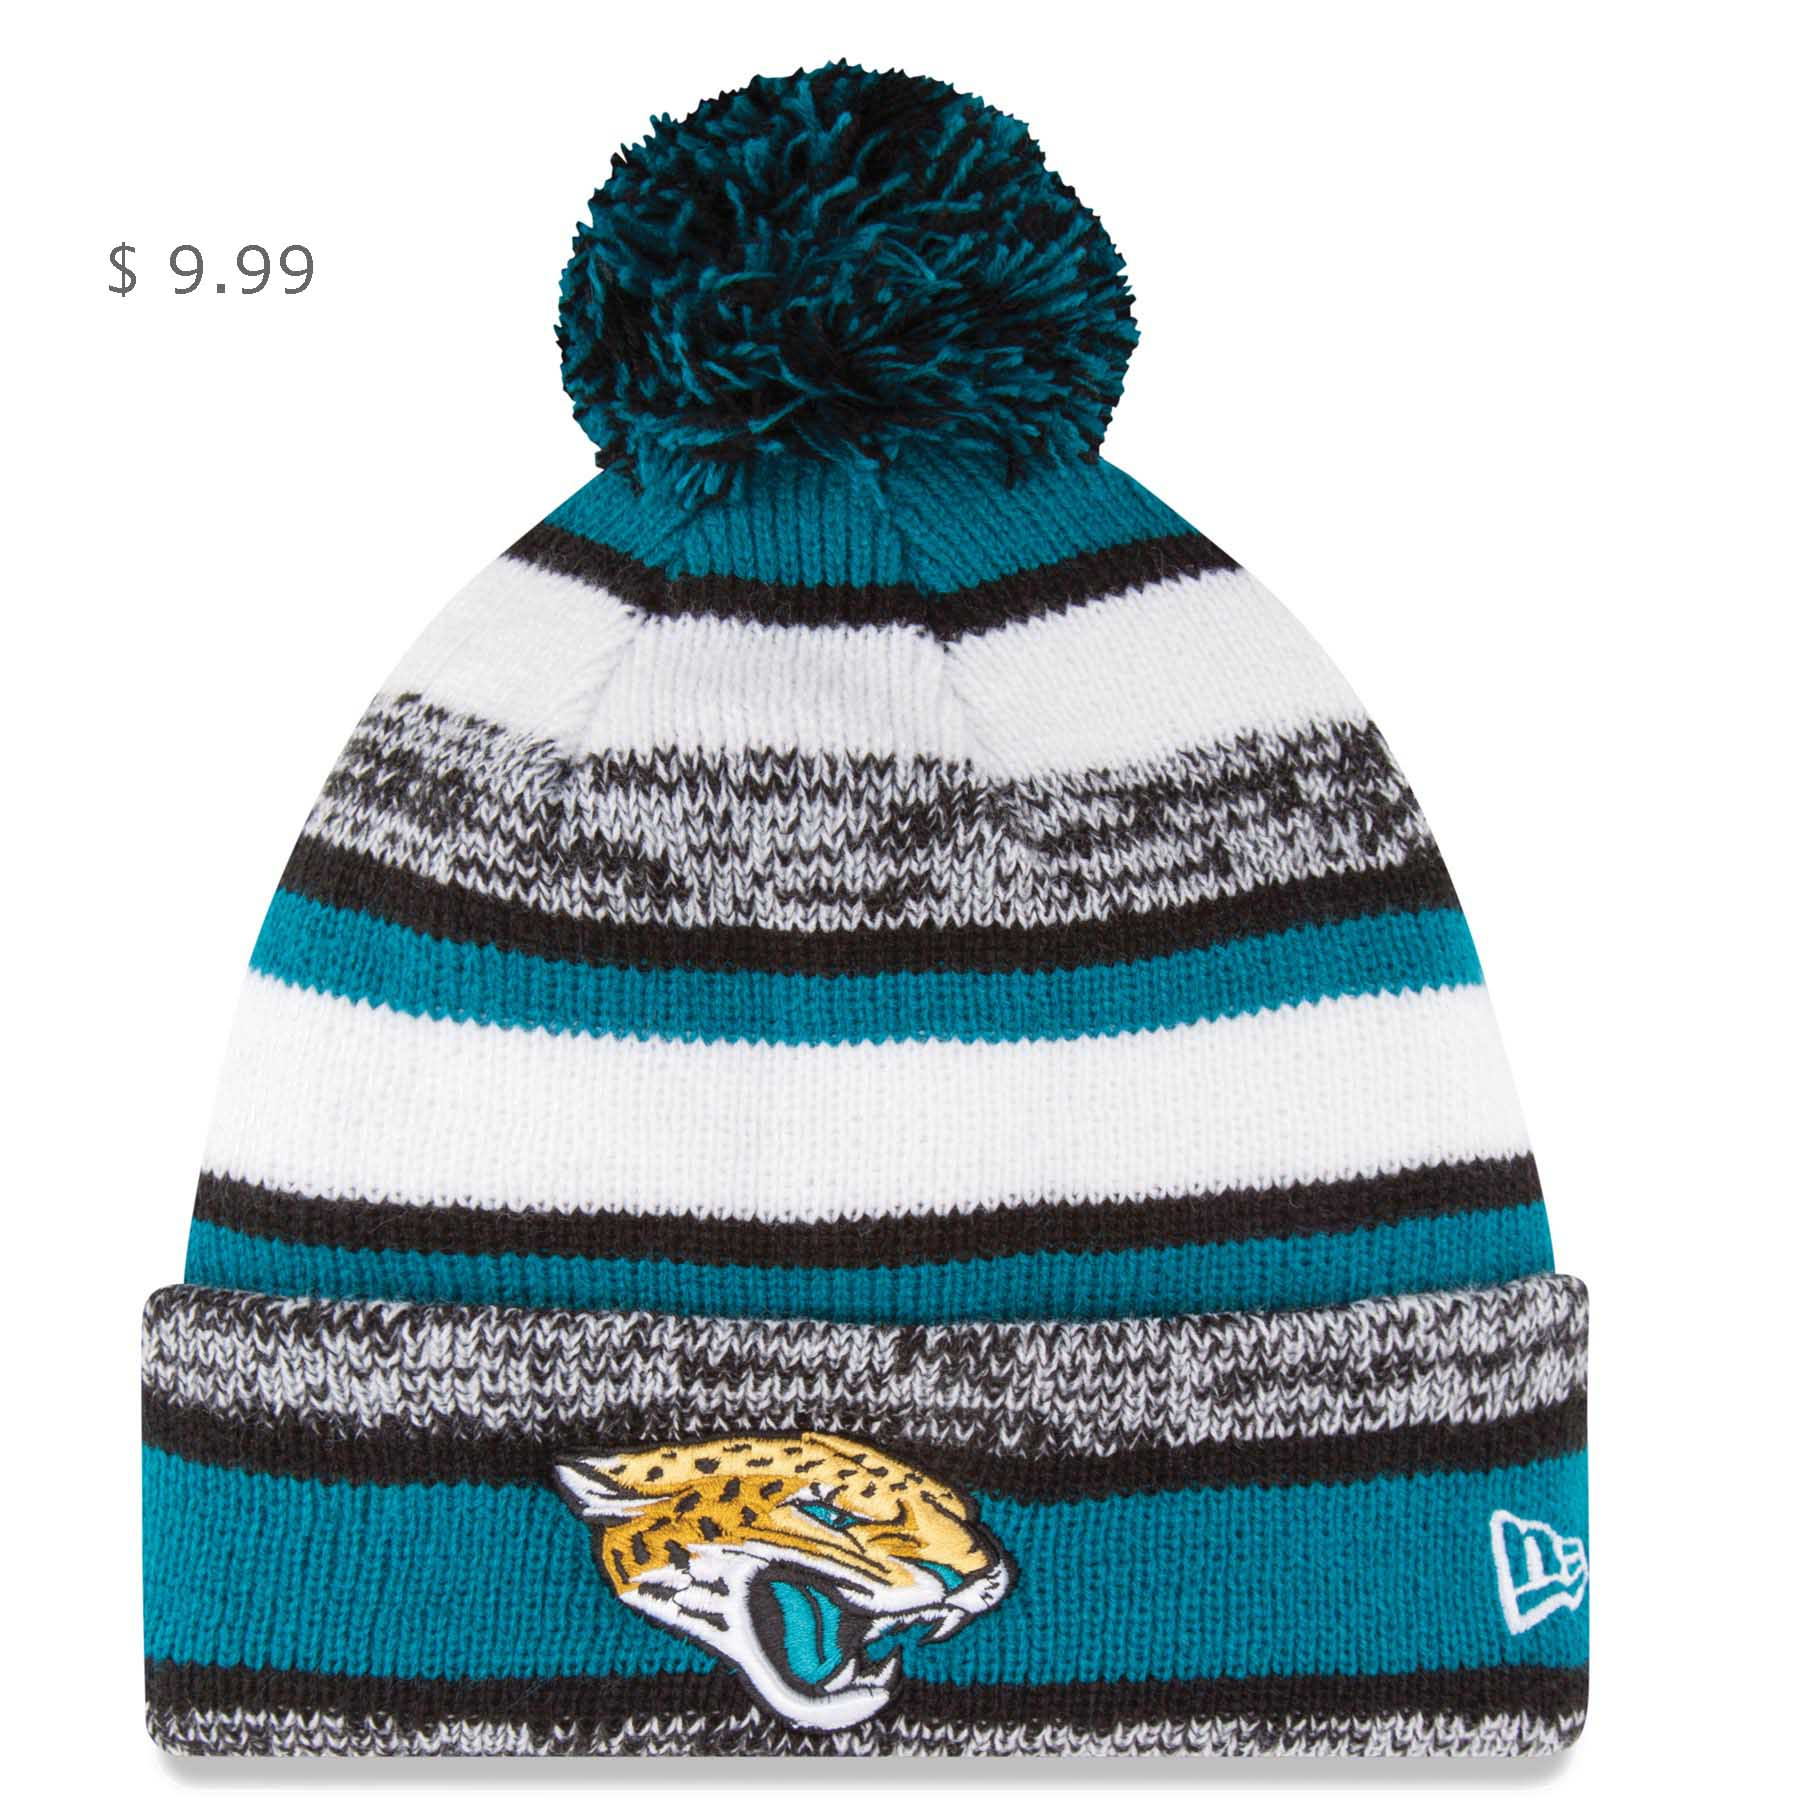 Buy Cheap NFL Jacksonville Jaguars Beanies Knit Hats Shop Quality  free shipping